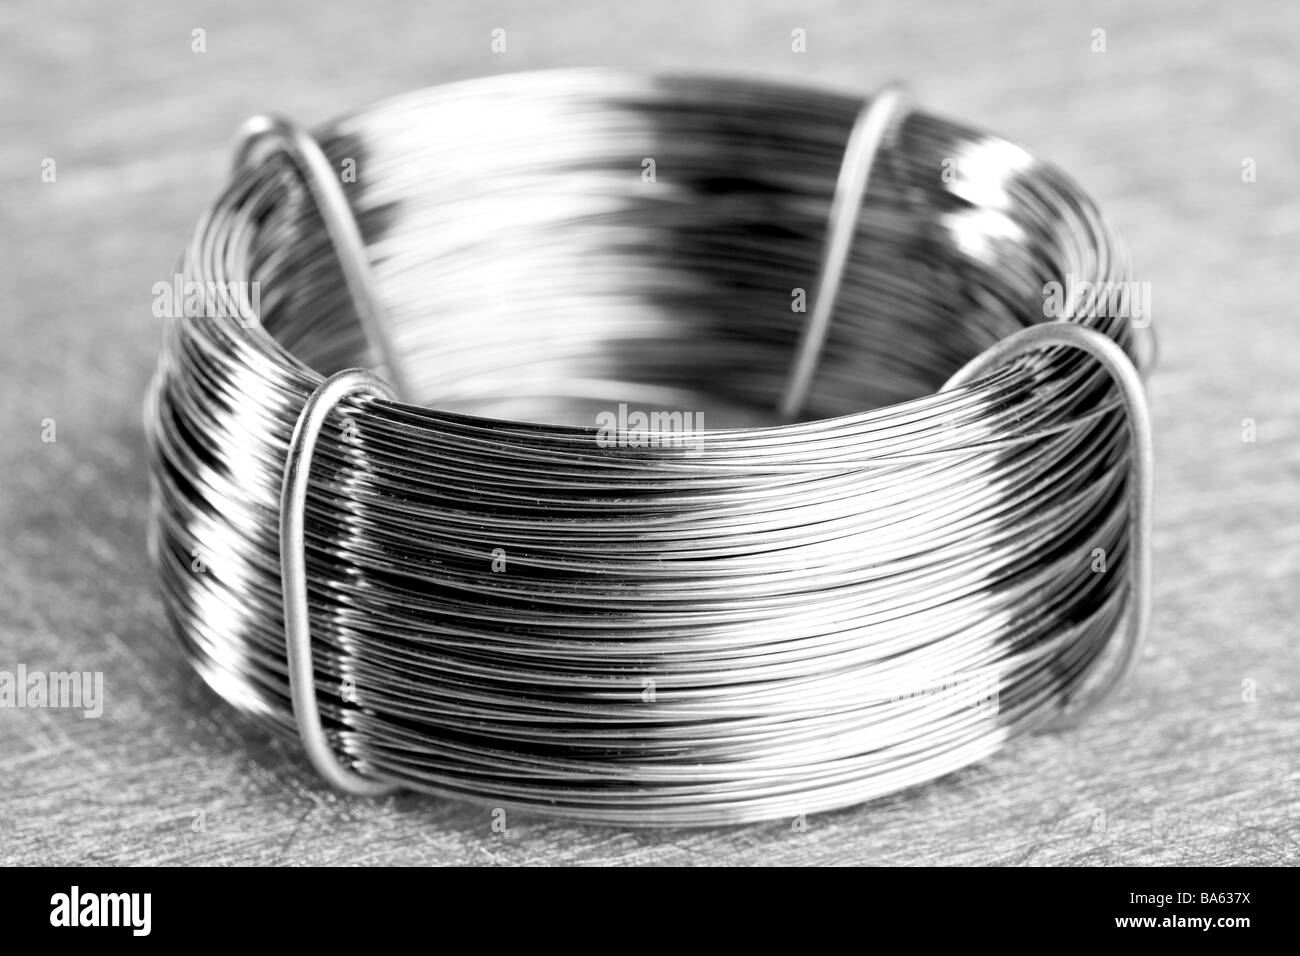 Coil of silver wire - Stock Image